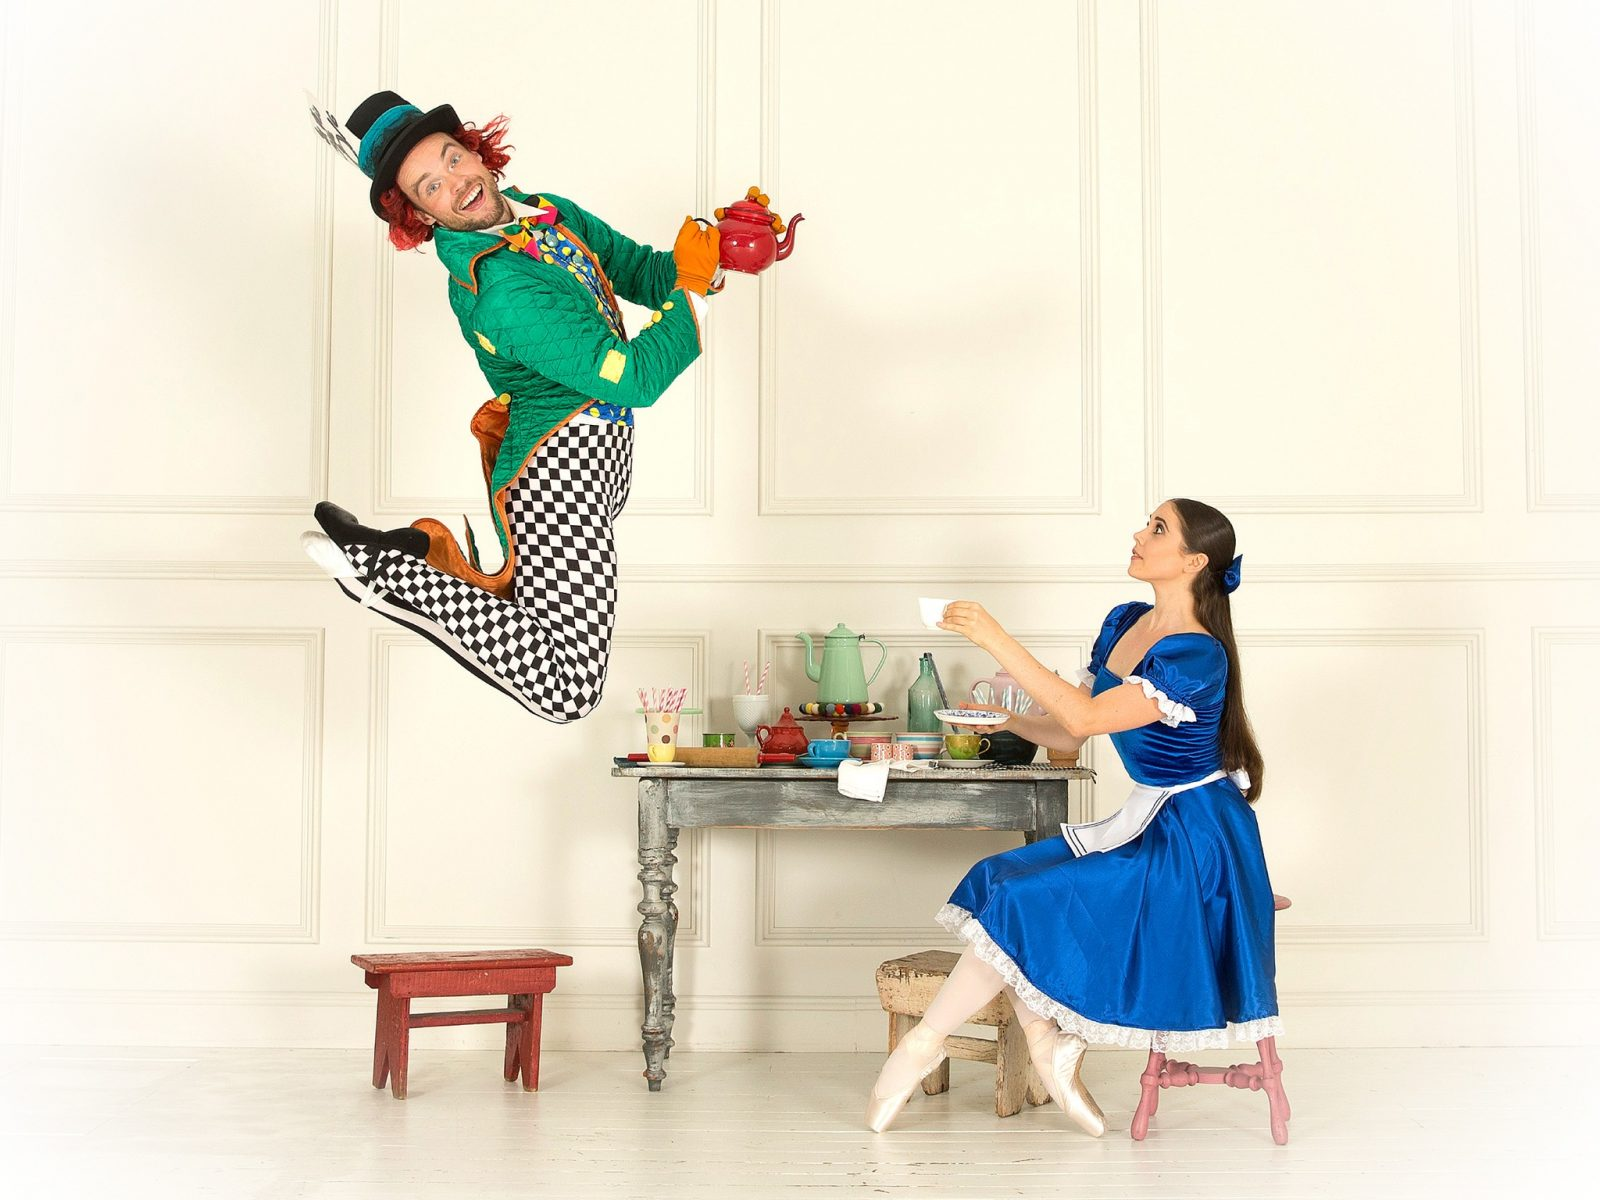 Alice sitting with tea while the Mad Hatter is Jumping mid-air